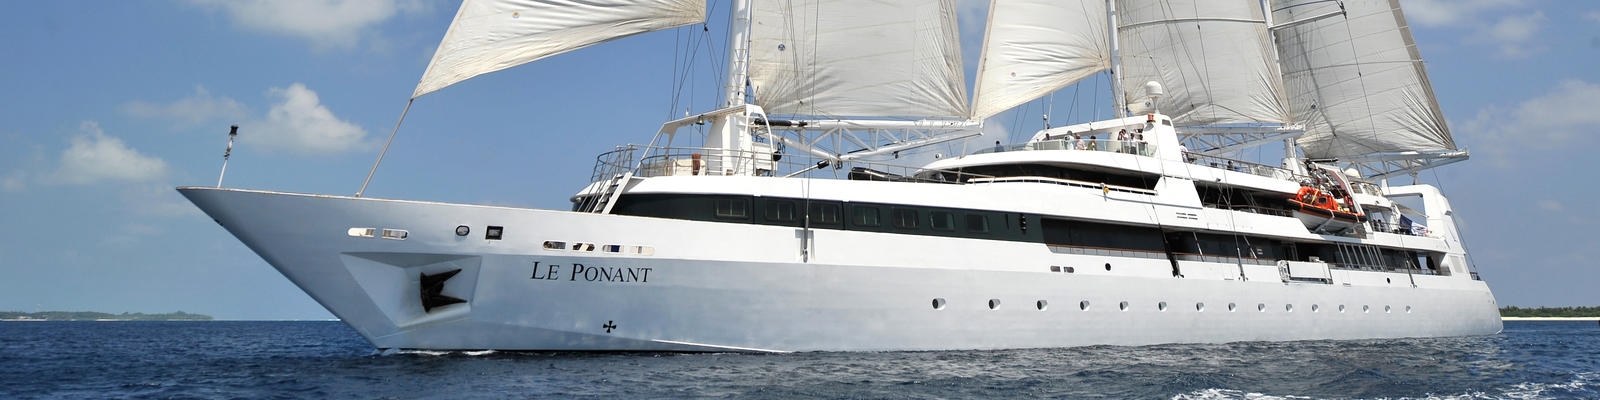 Francois Illas New Tradition: Le Ponant Cruise Ship: Review, Photos & Departure Ports On